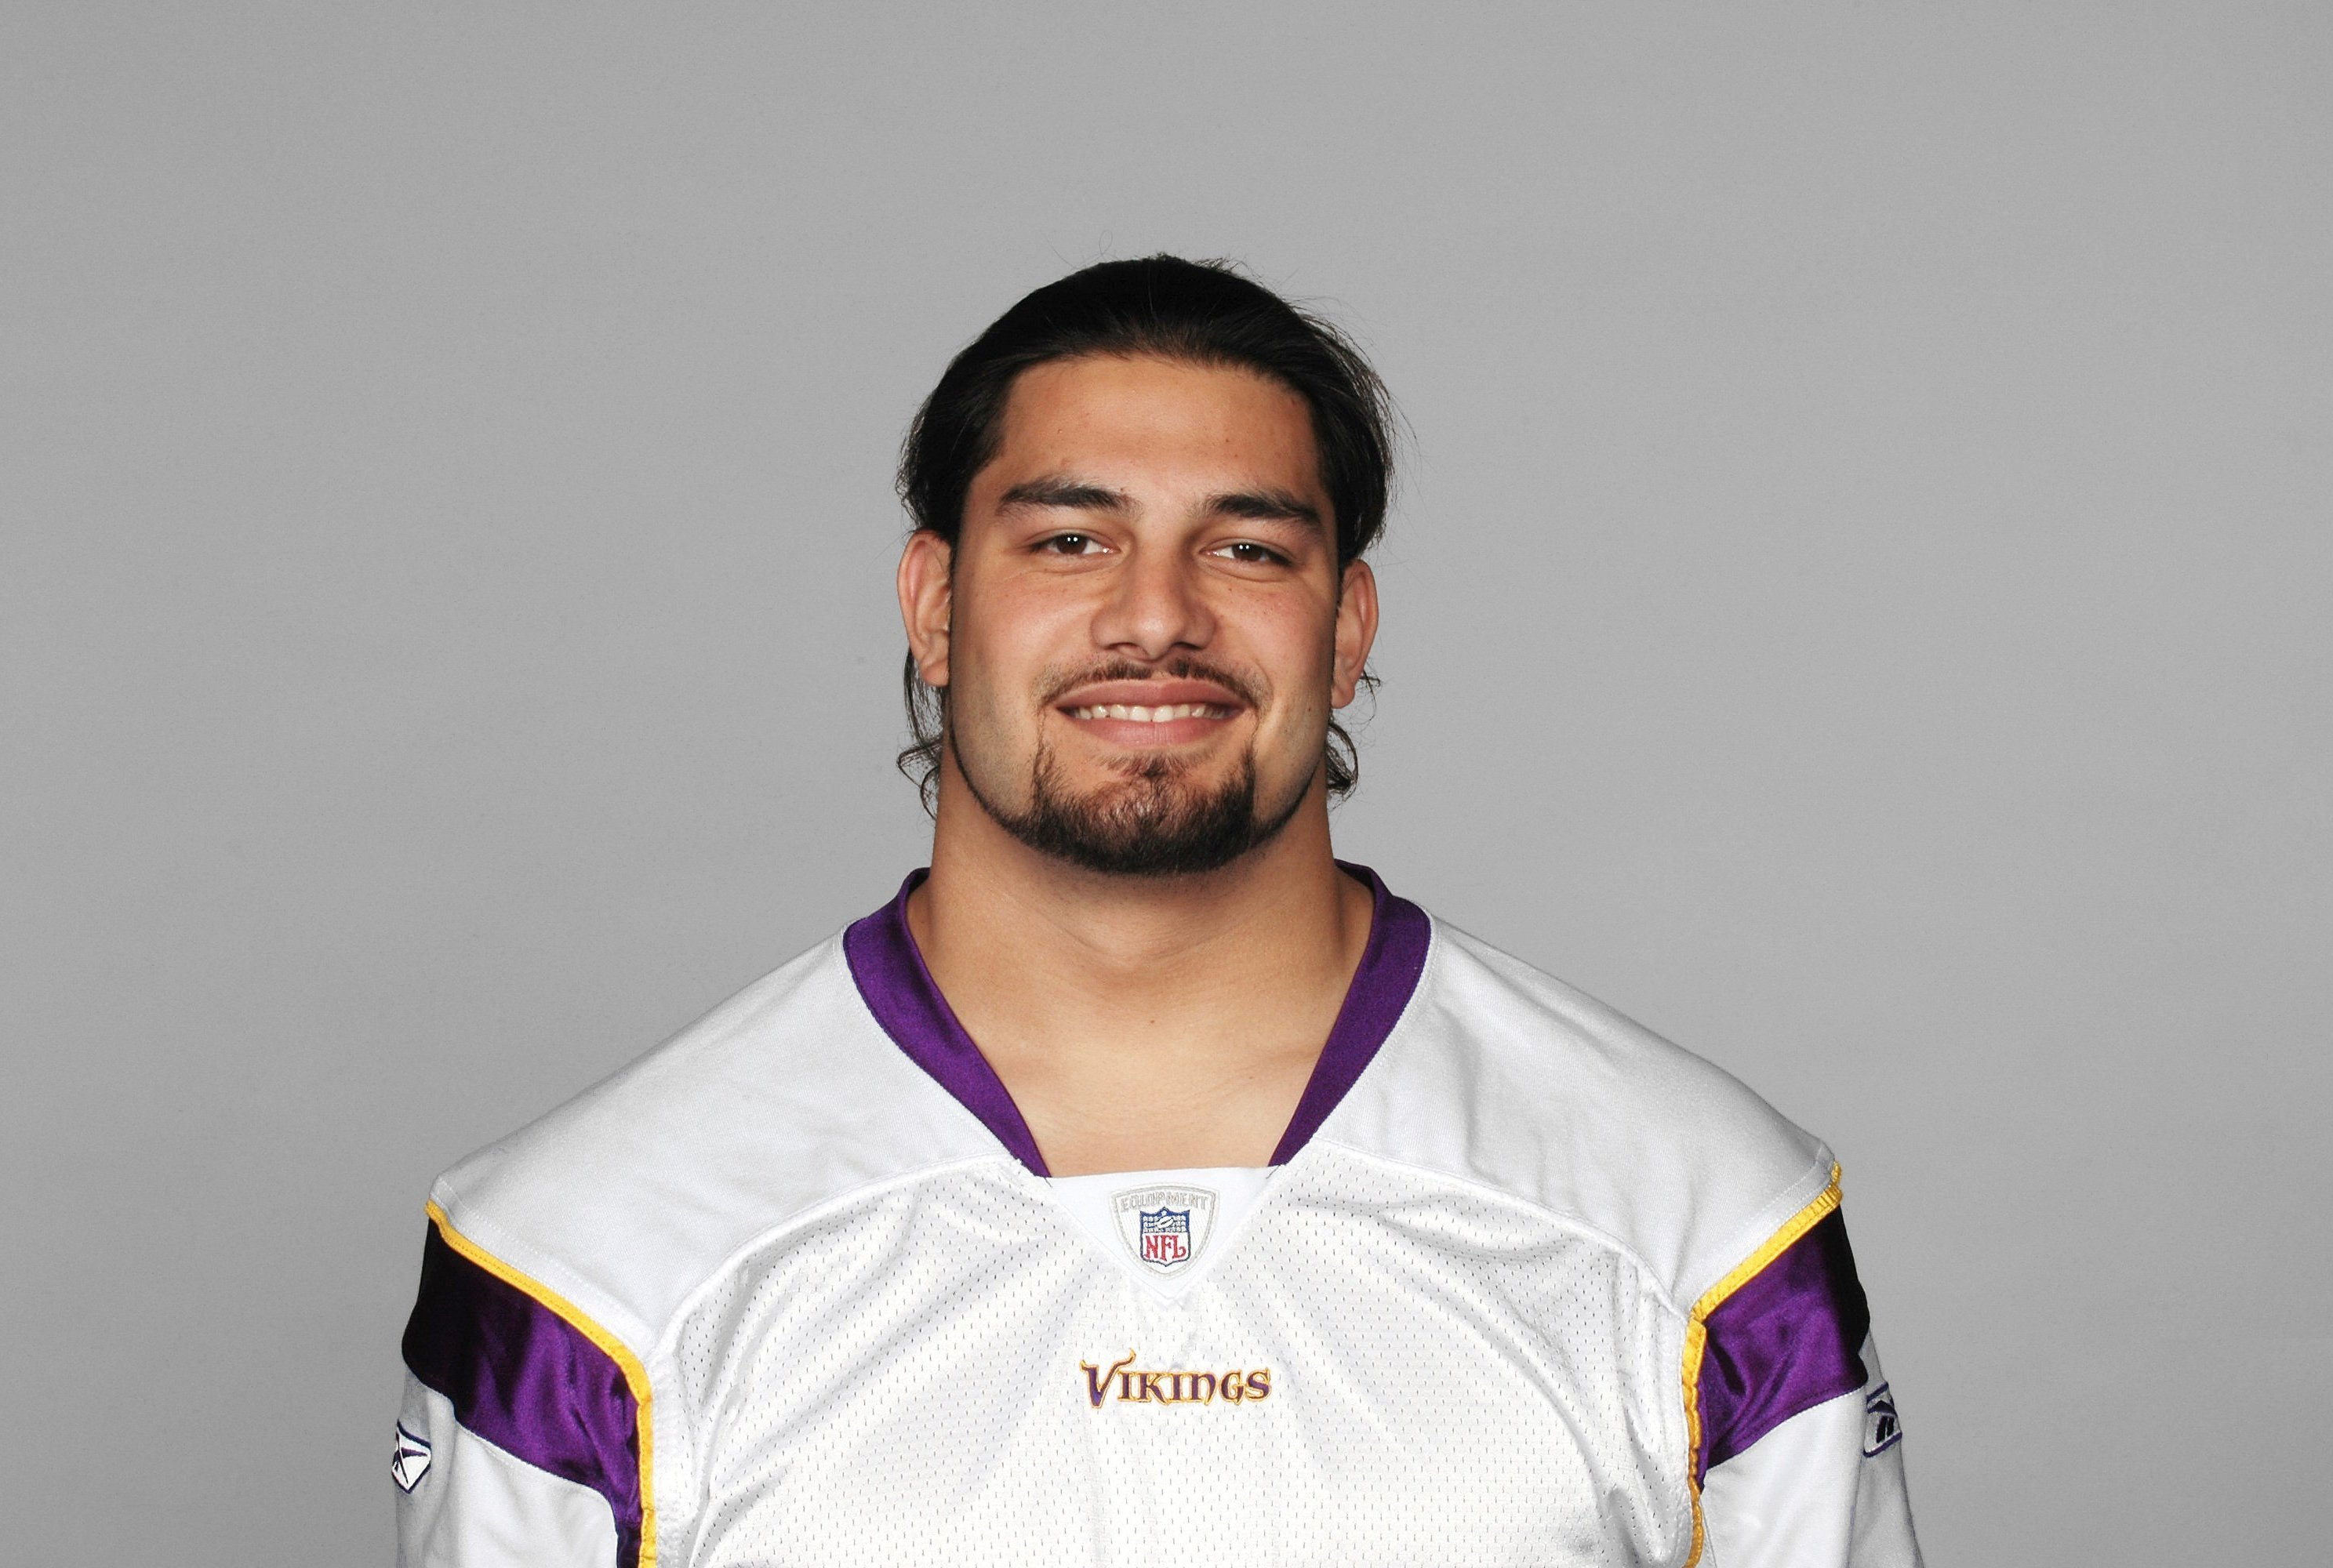 Roman Reigns in his time as a football player